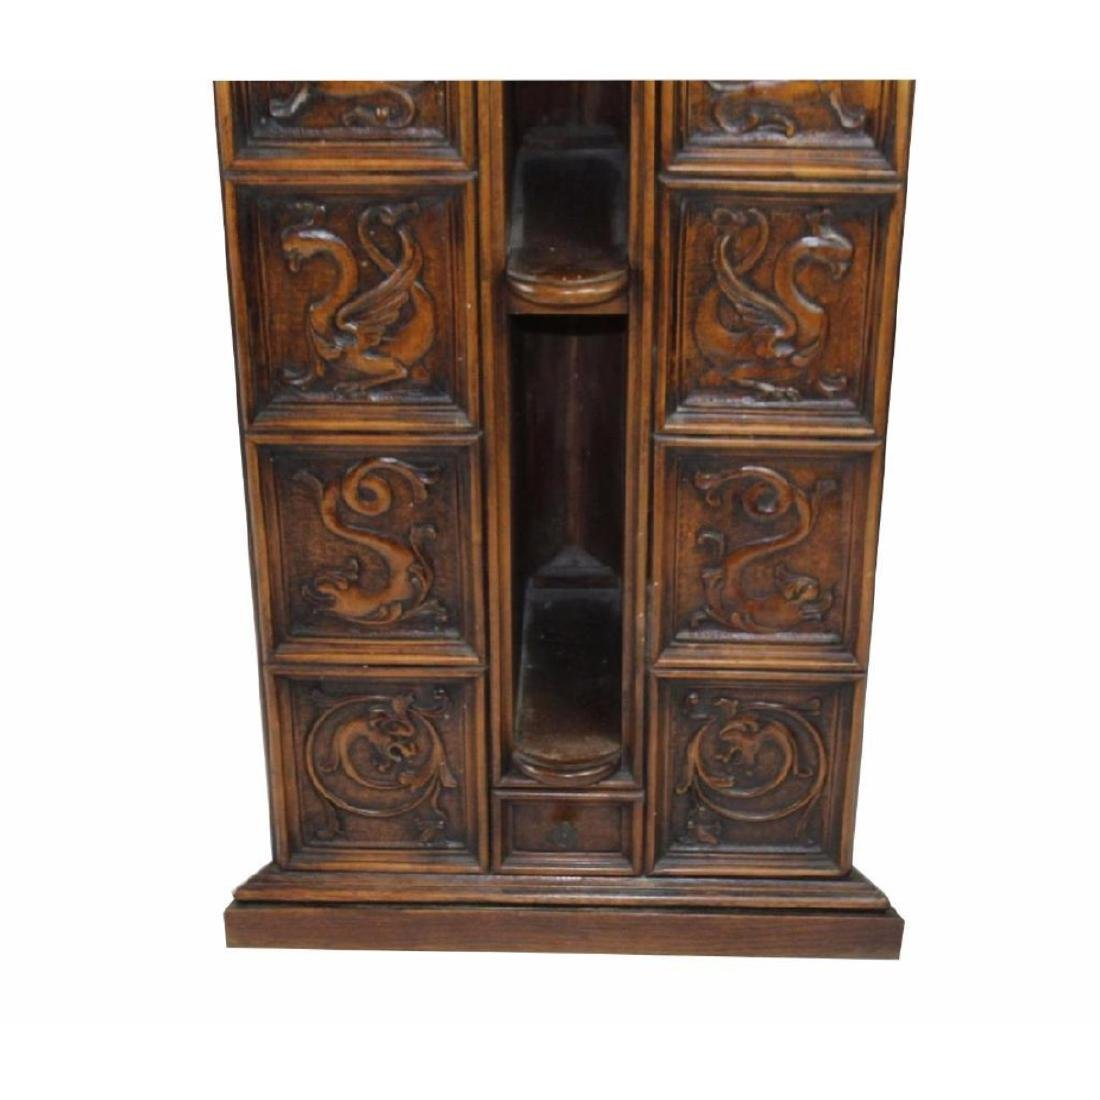 Italian Gothic Revival Carved Oak Lecturn - 3